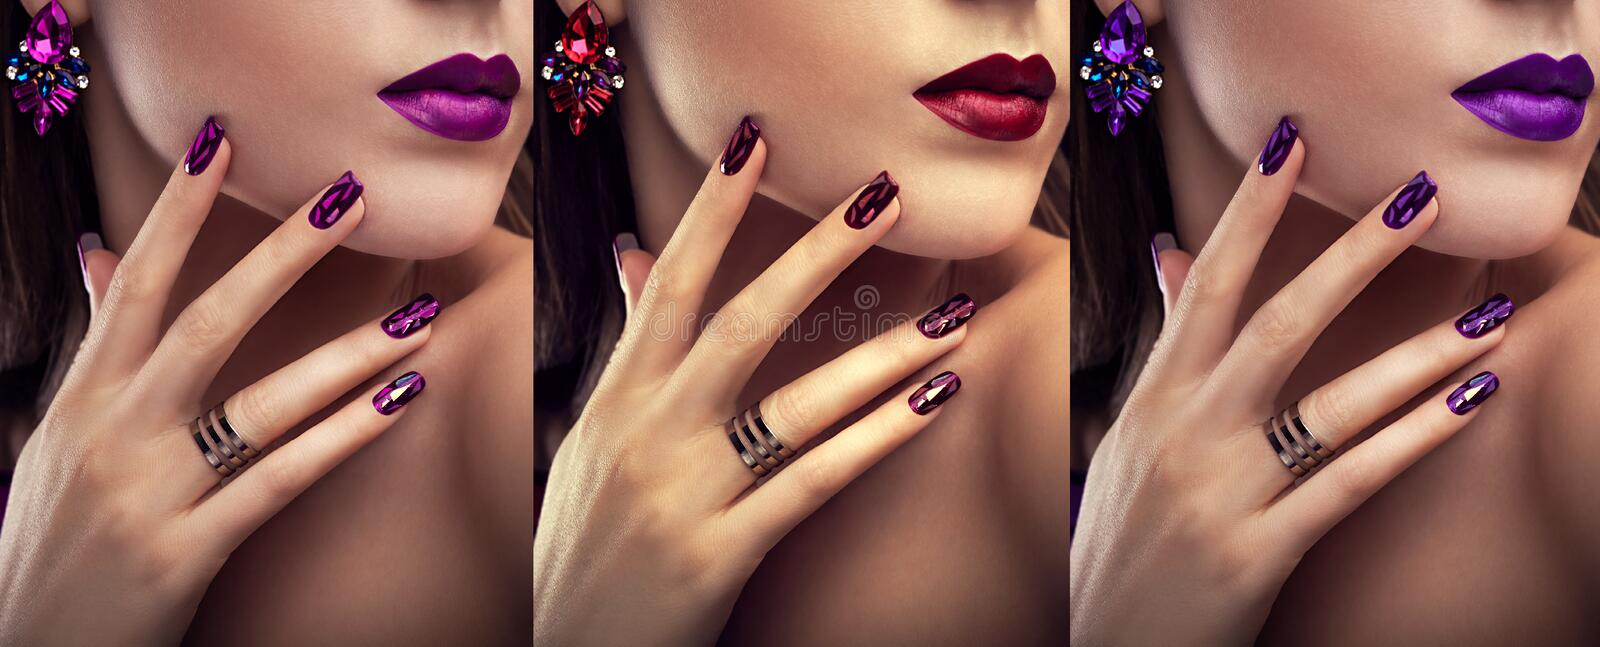 Beautiful woman with different make-up and manicure wearing jewellery. Three variants of stylish looks royalty free stock image